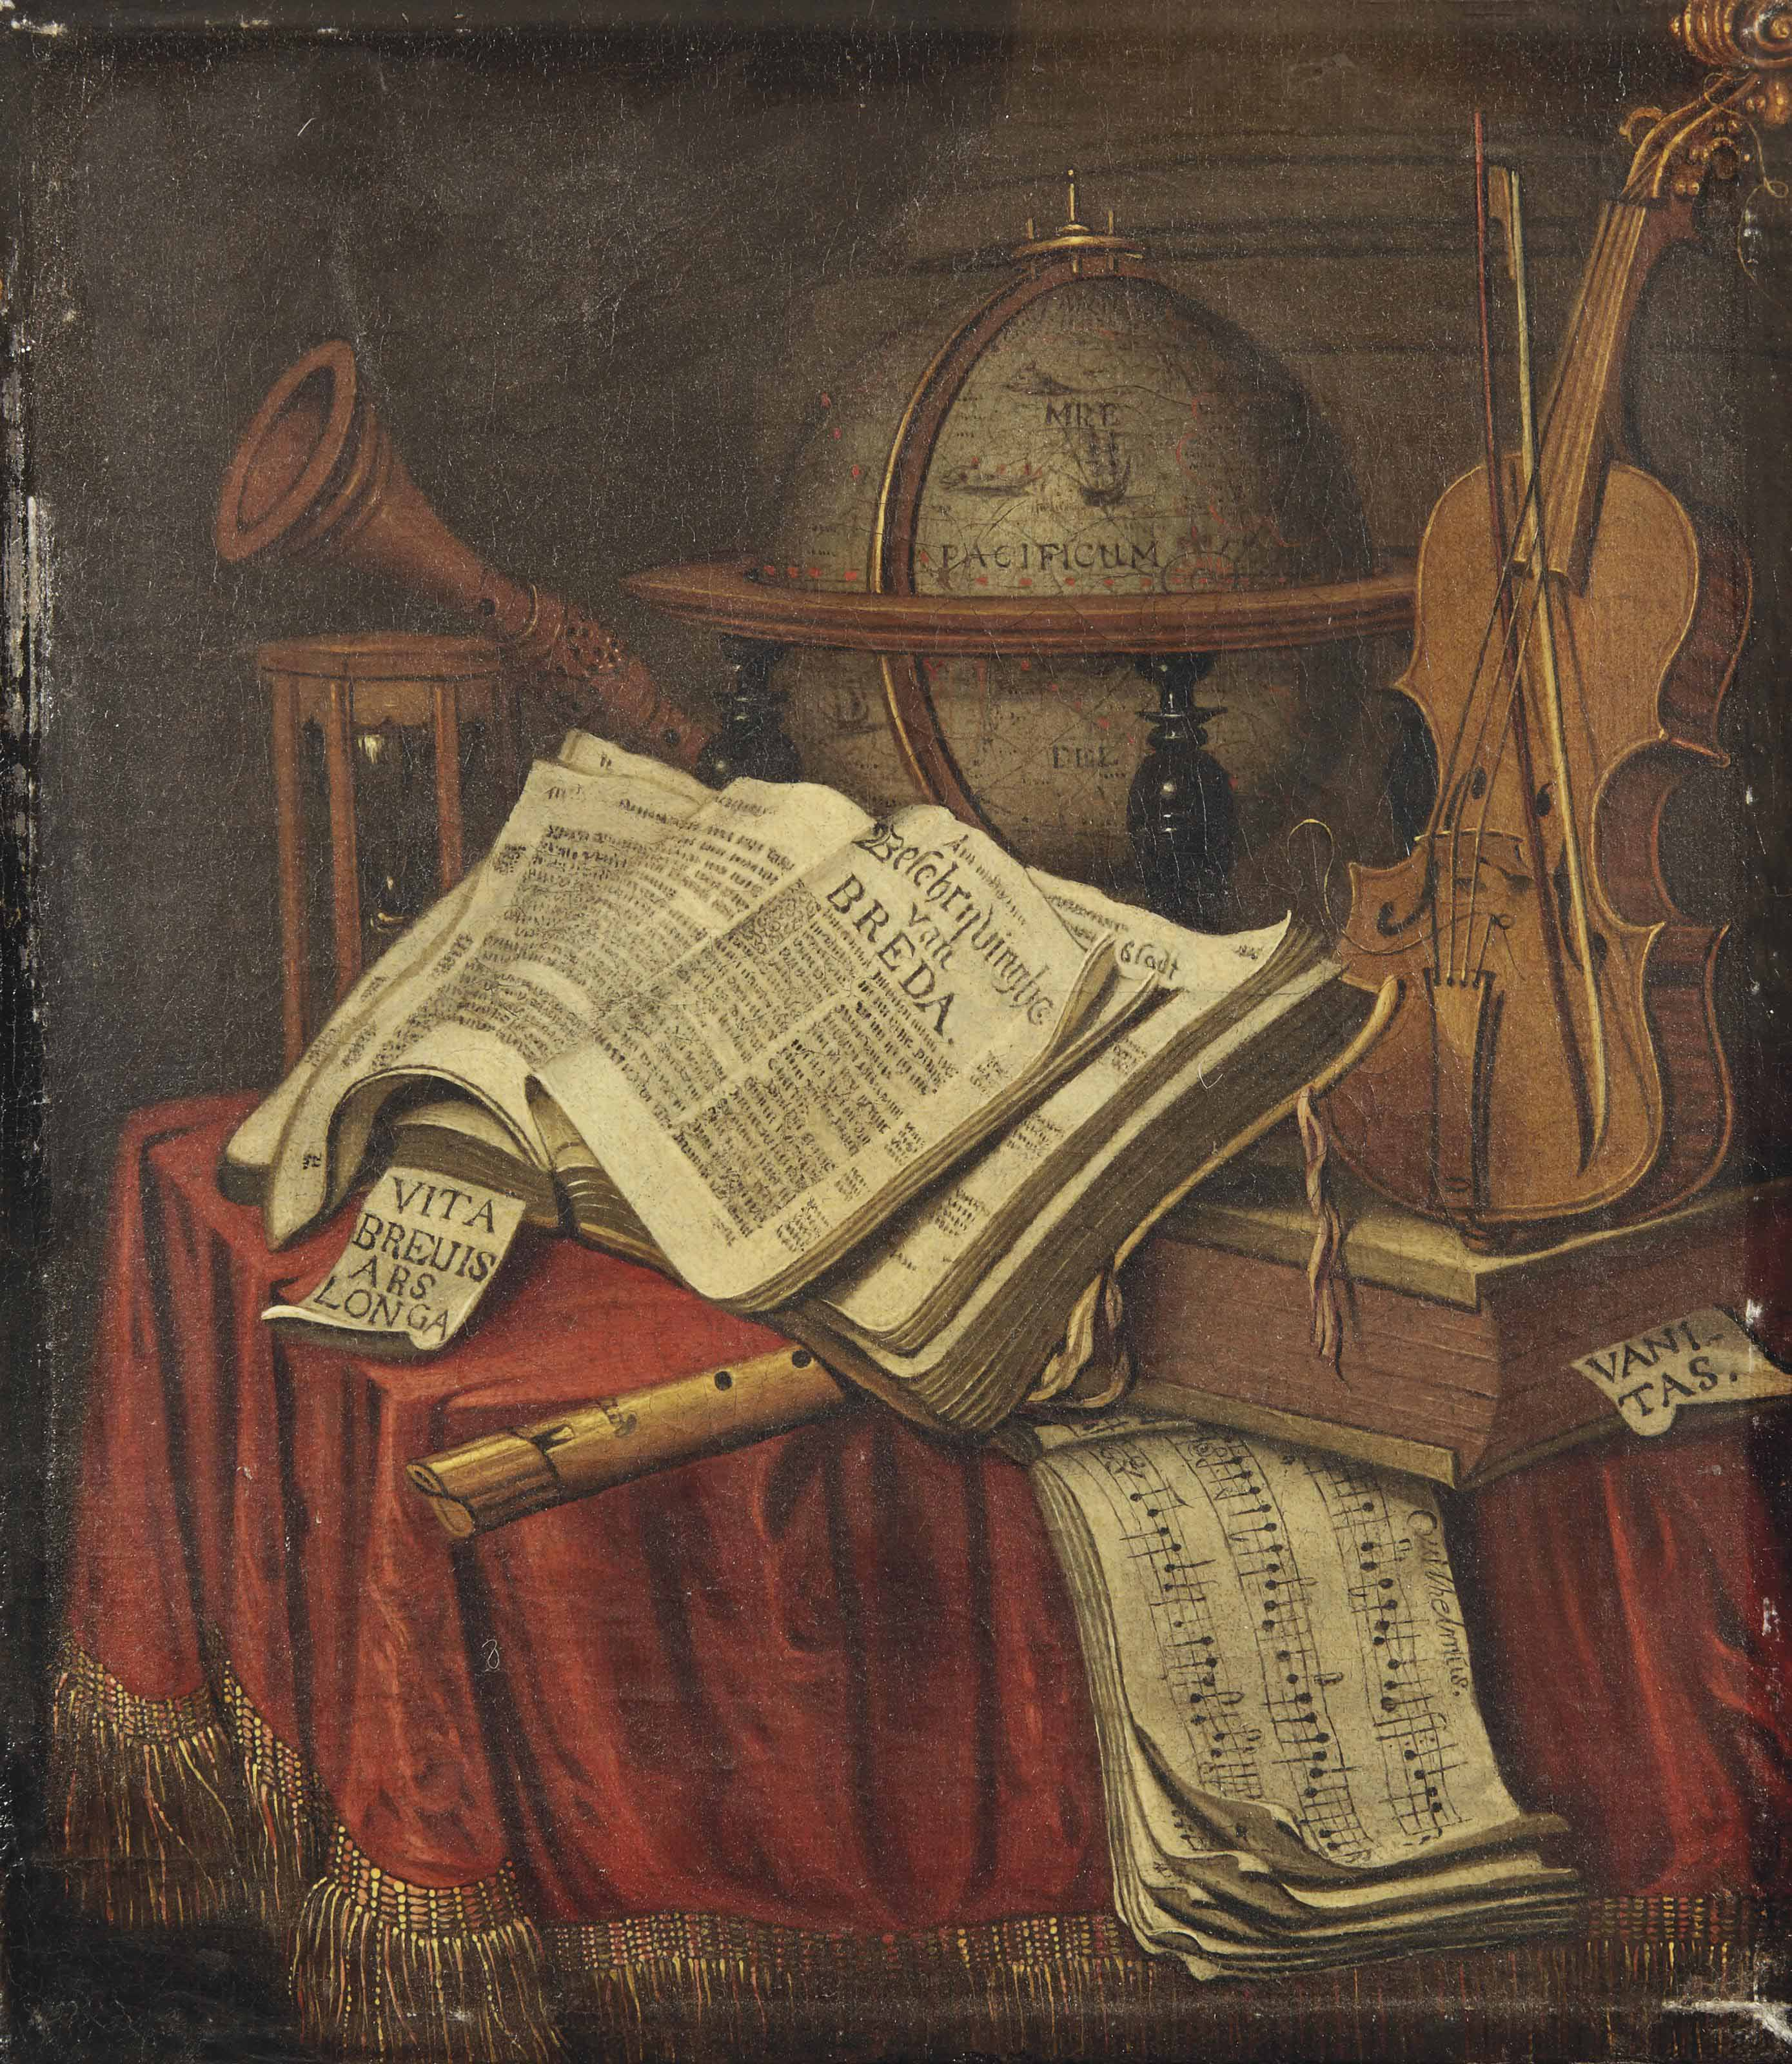 A Vanitas still life with a globe, musical instruments, an hourglass, an open copy of 'Beschrijvinghe van Breda' and sheet music of the 'Wilhelmus', all on a draped table